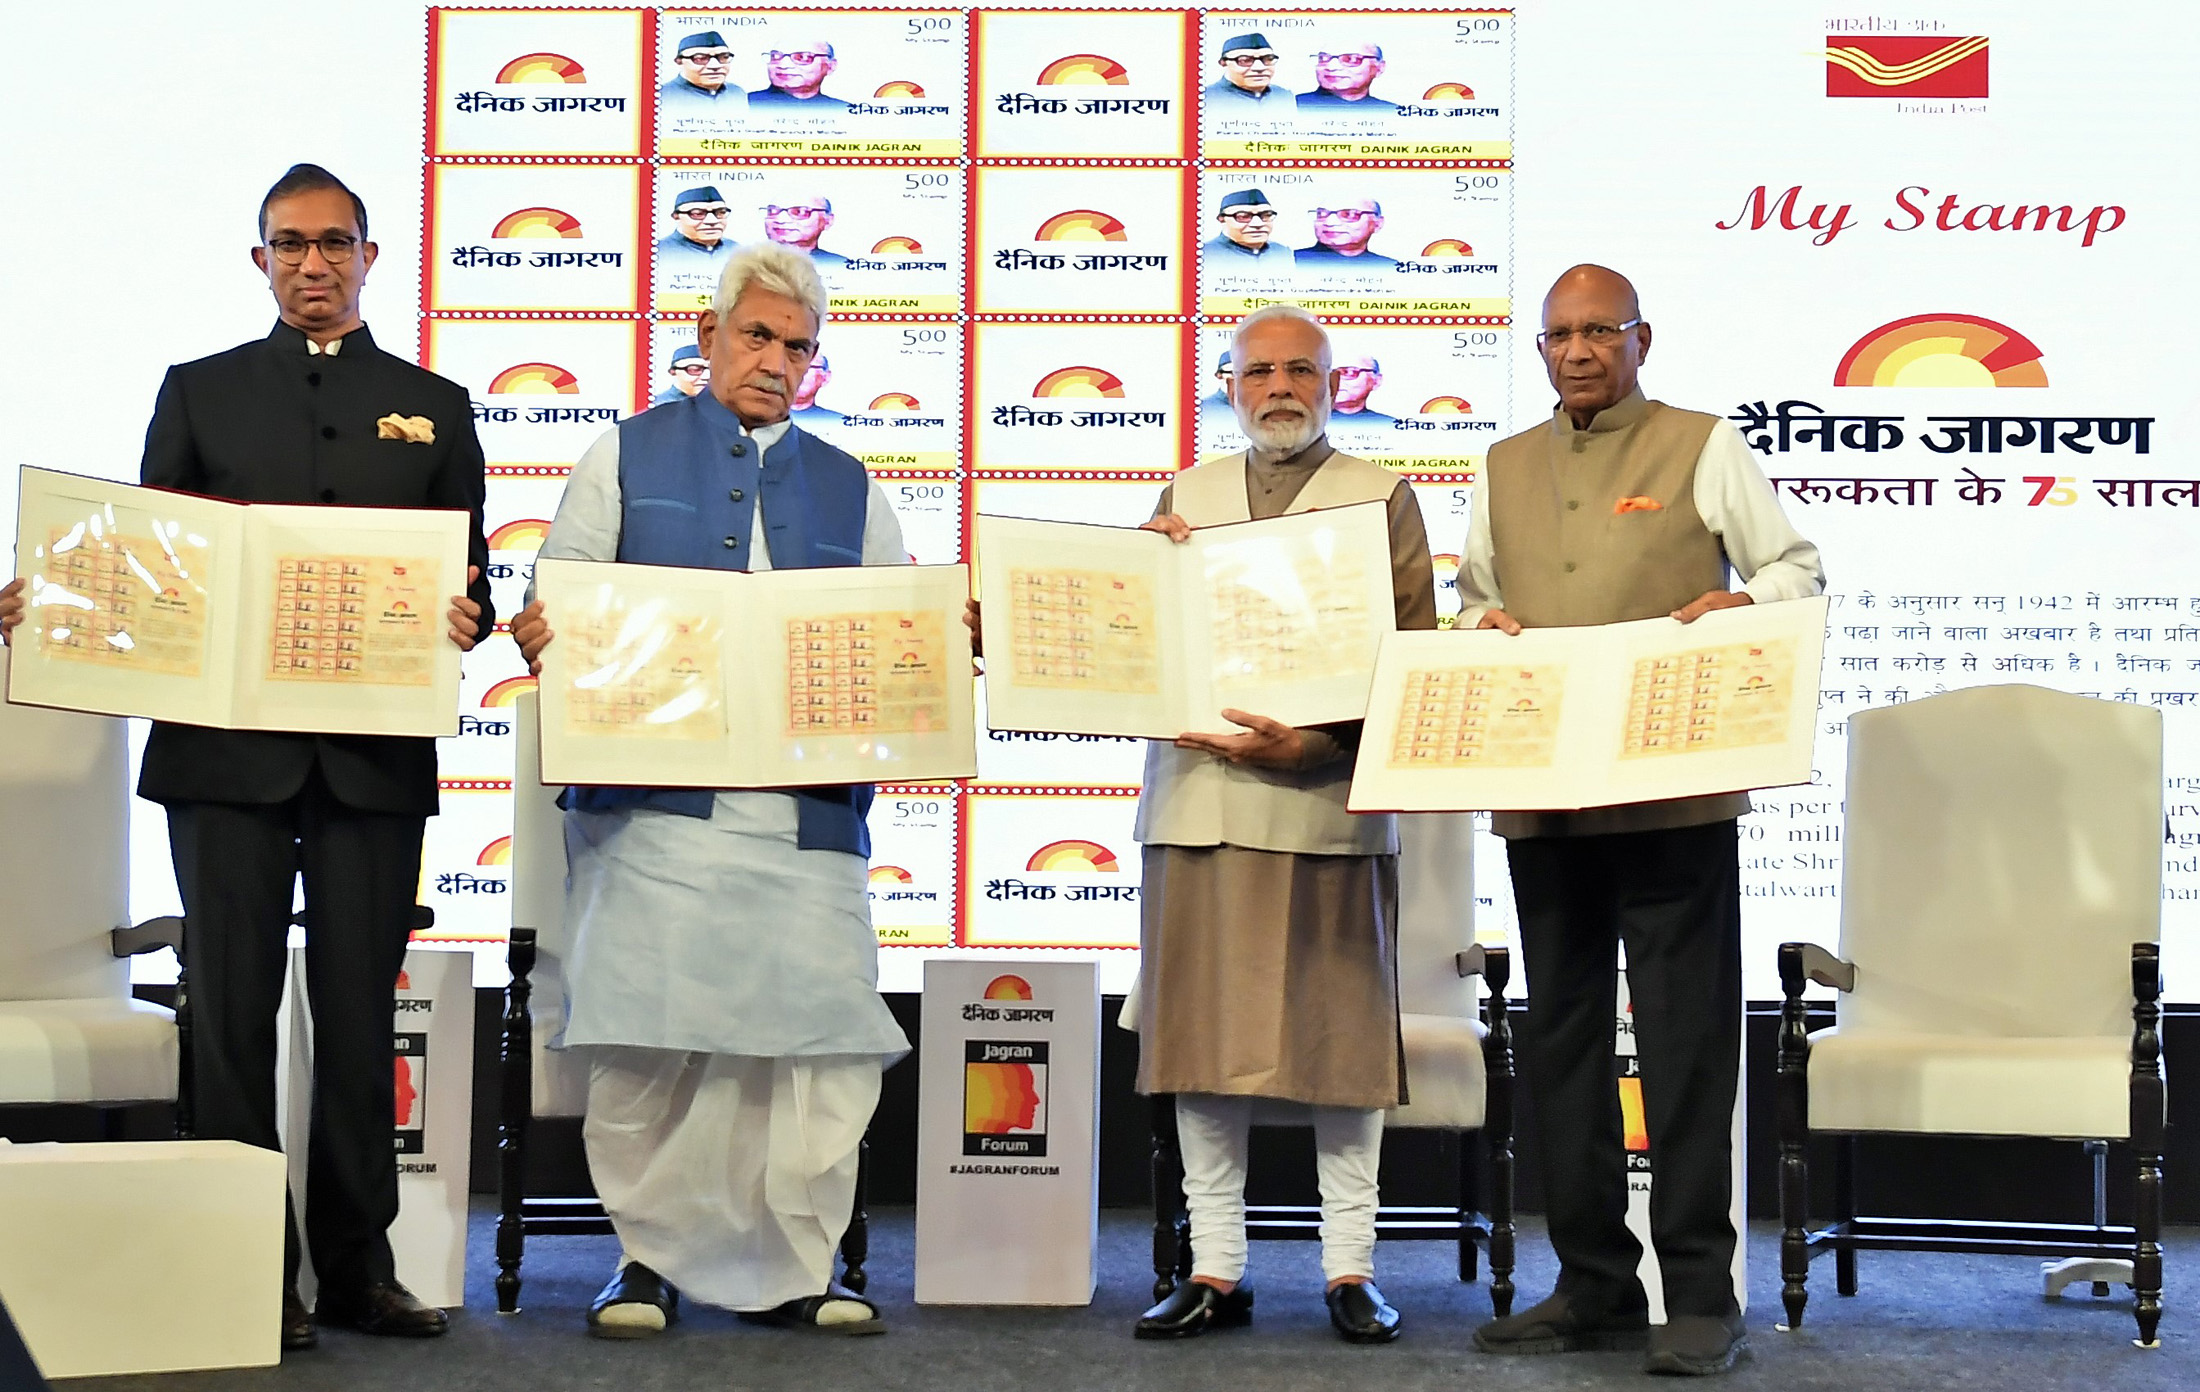 PM's address at Jagran Forum on the occasion of 75th anniversary celebration of Dainik Jagran